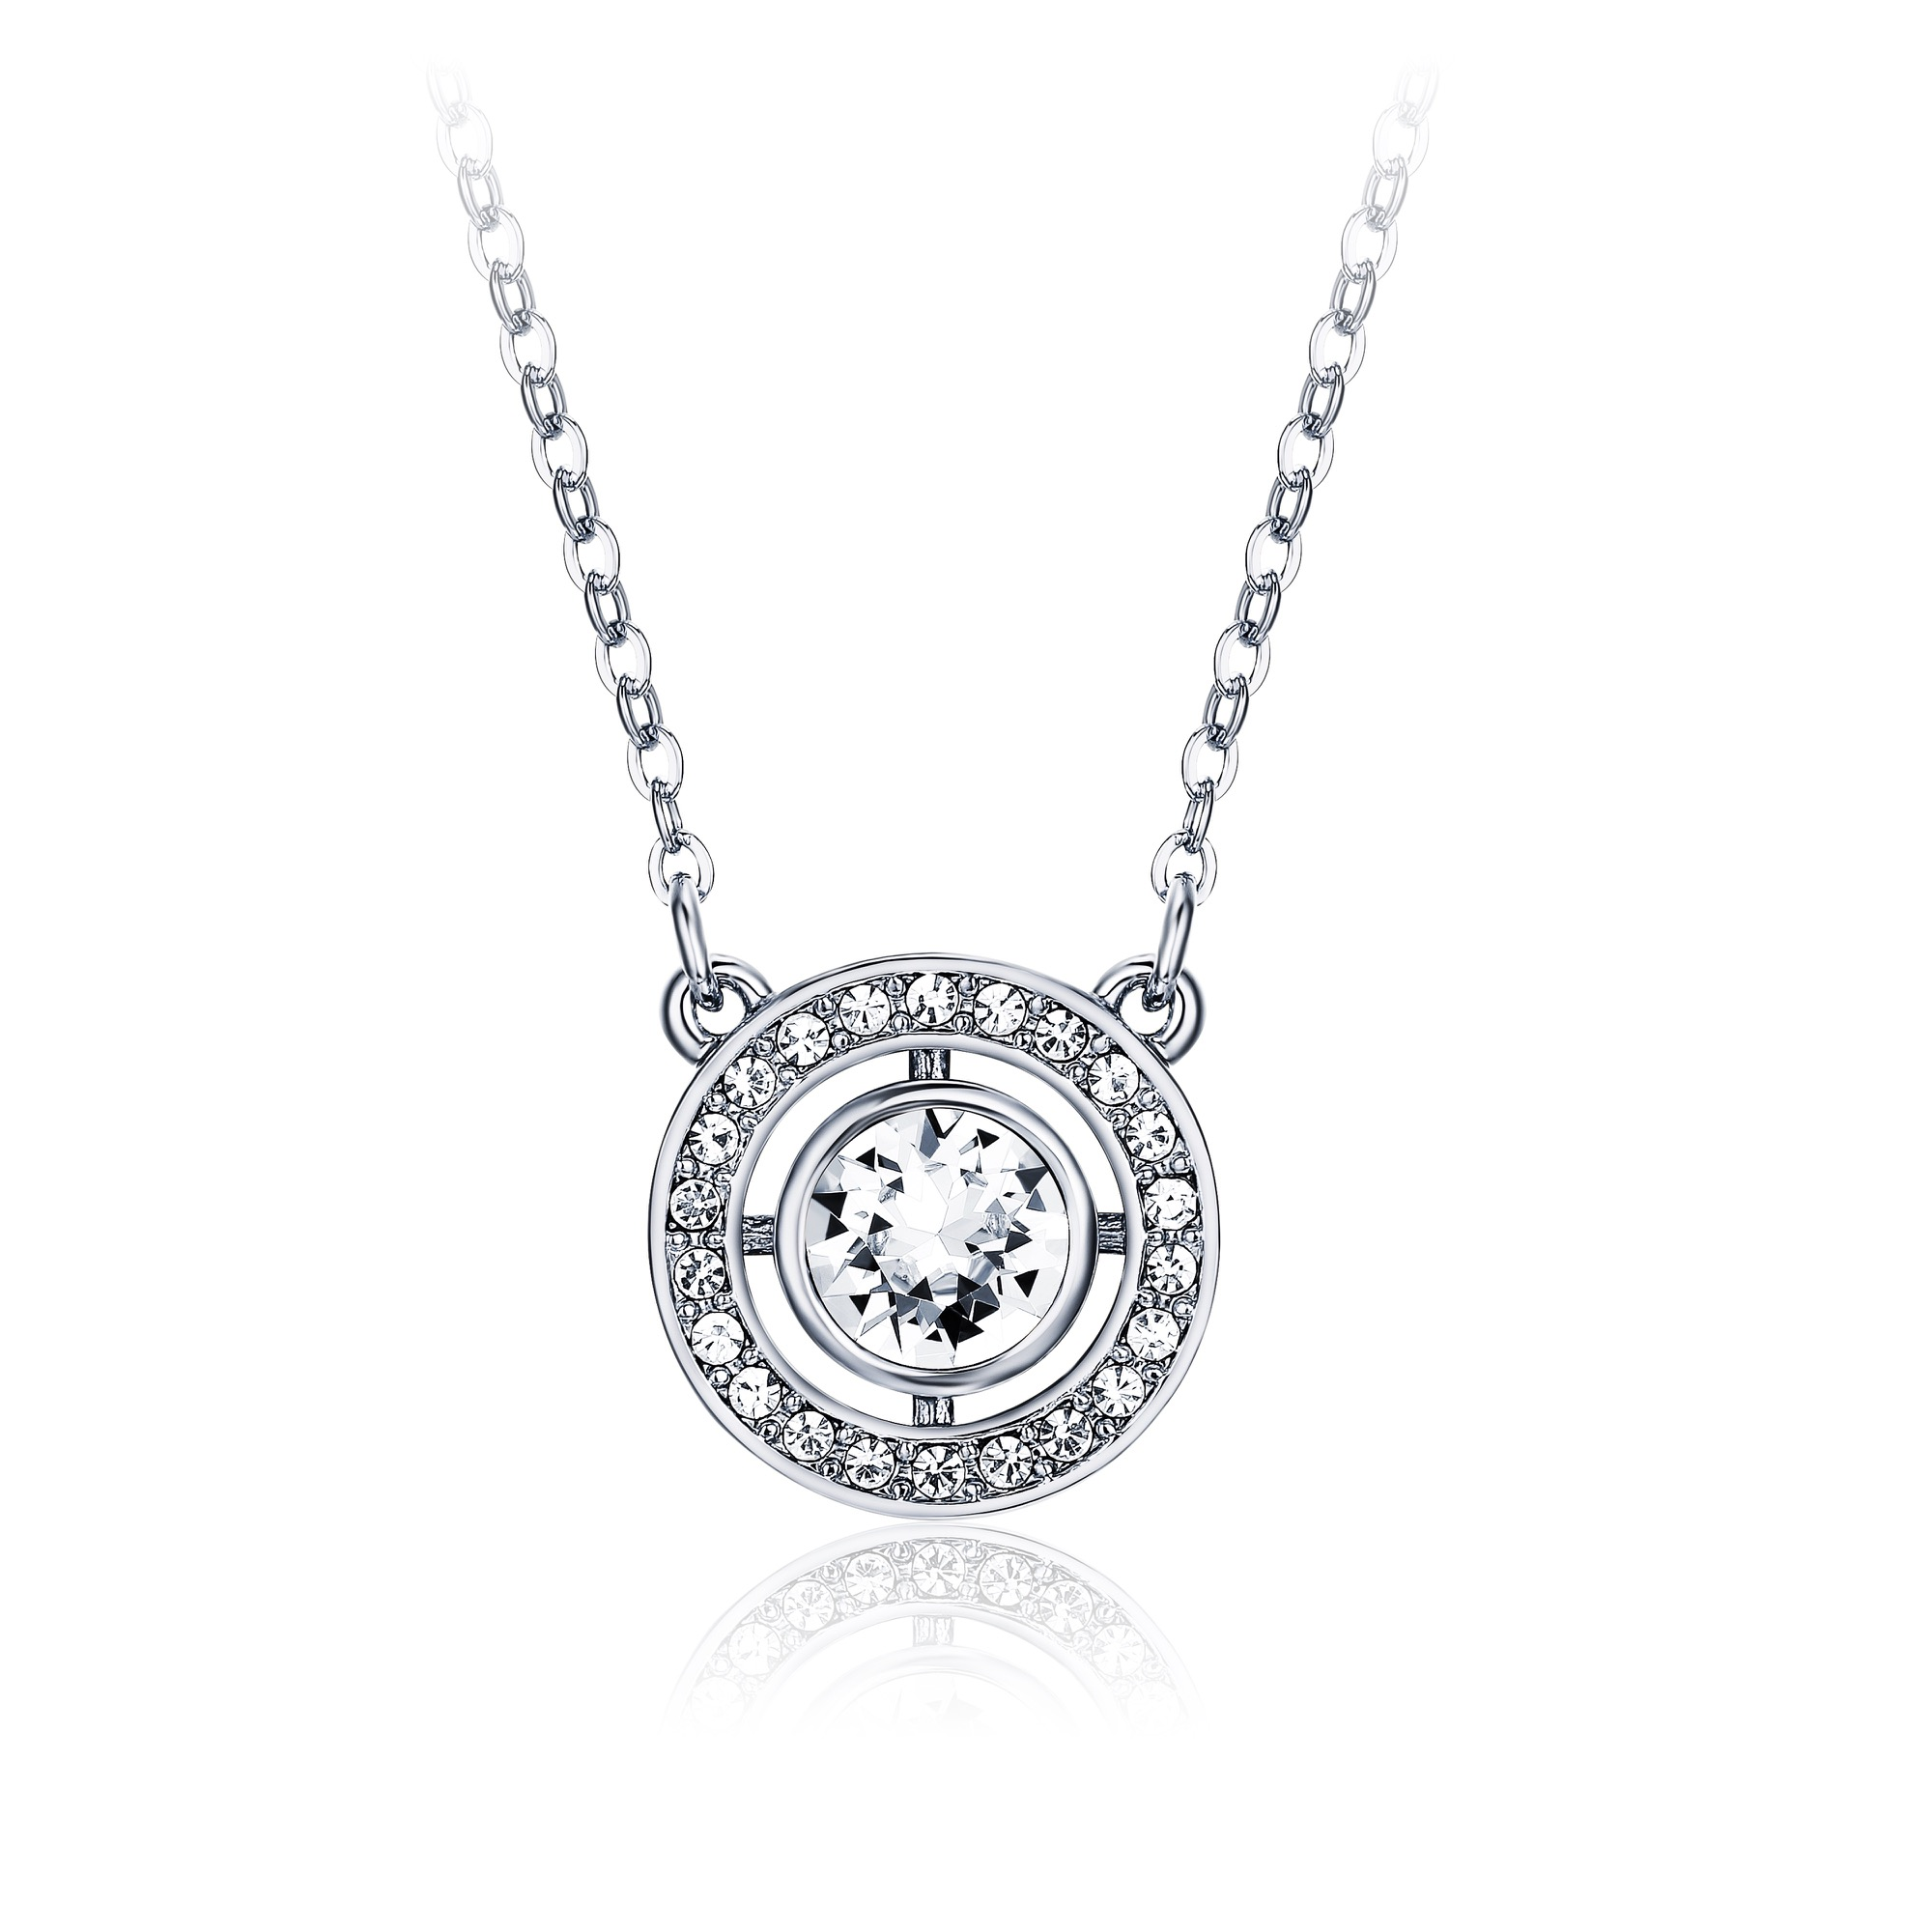 sold macy crystal women in necklace at normal tone gallery silvernight pendant product swarovski silver metallic jewelry s previously lyst